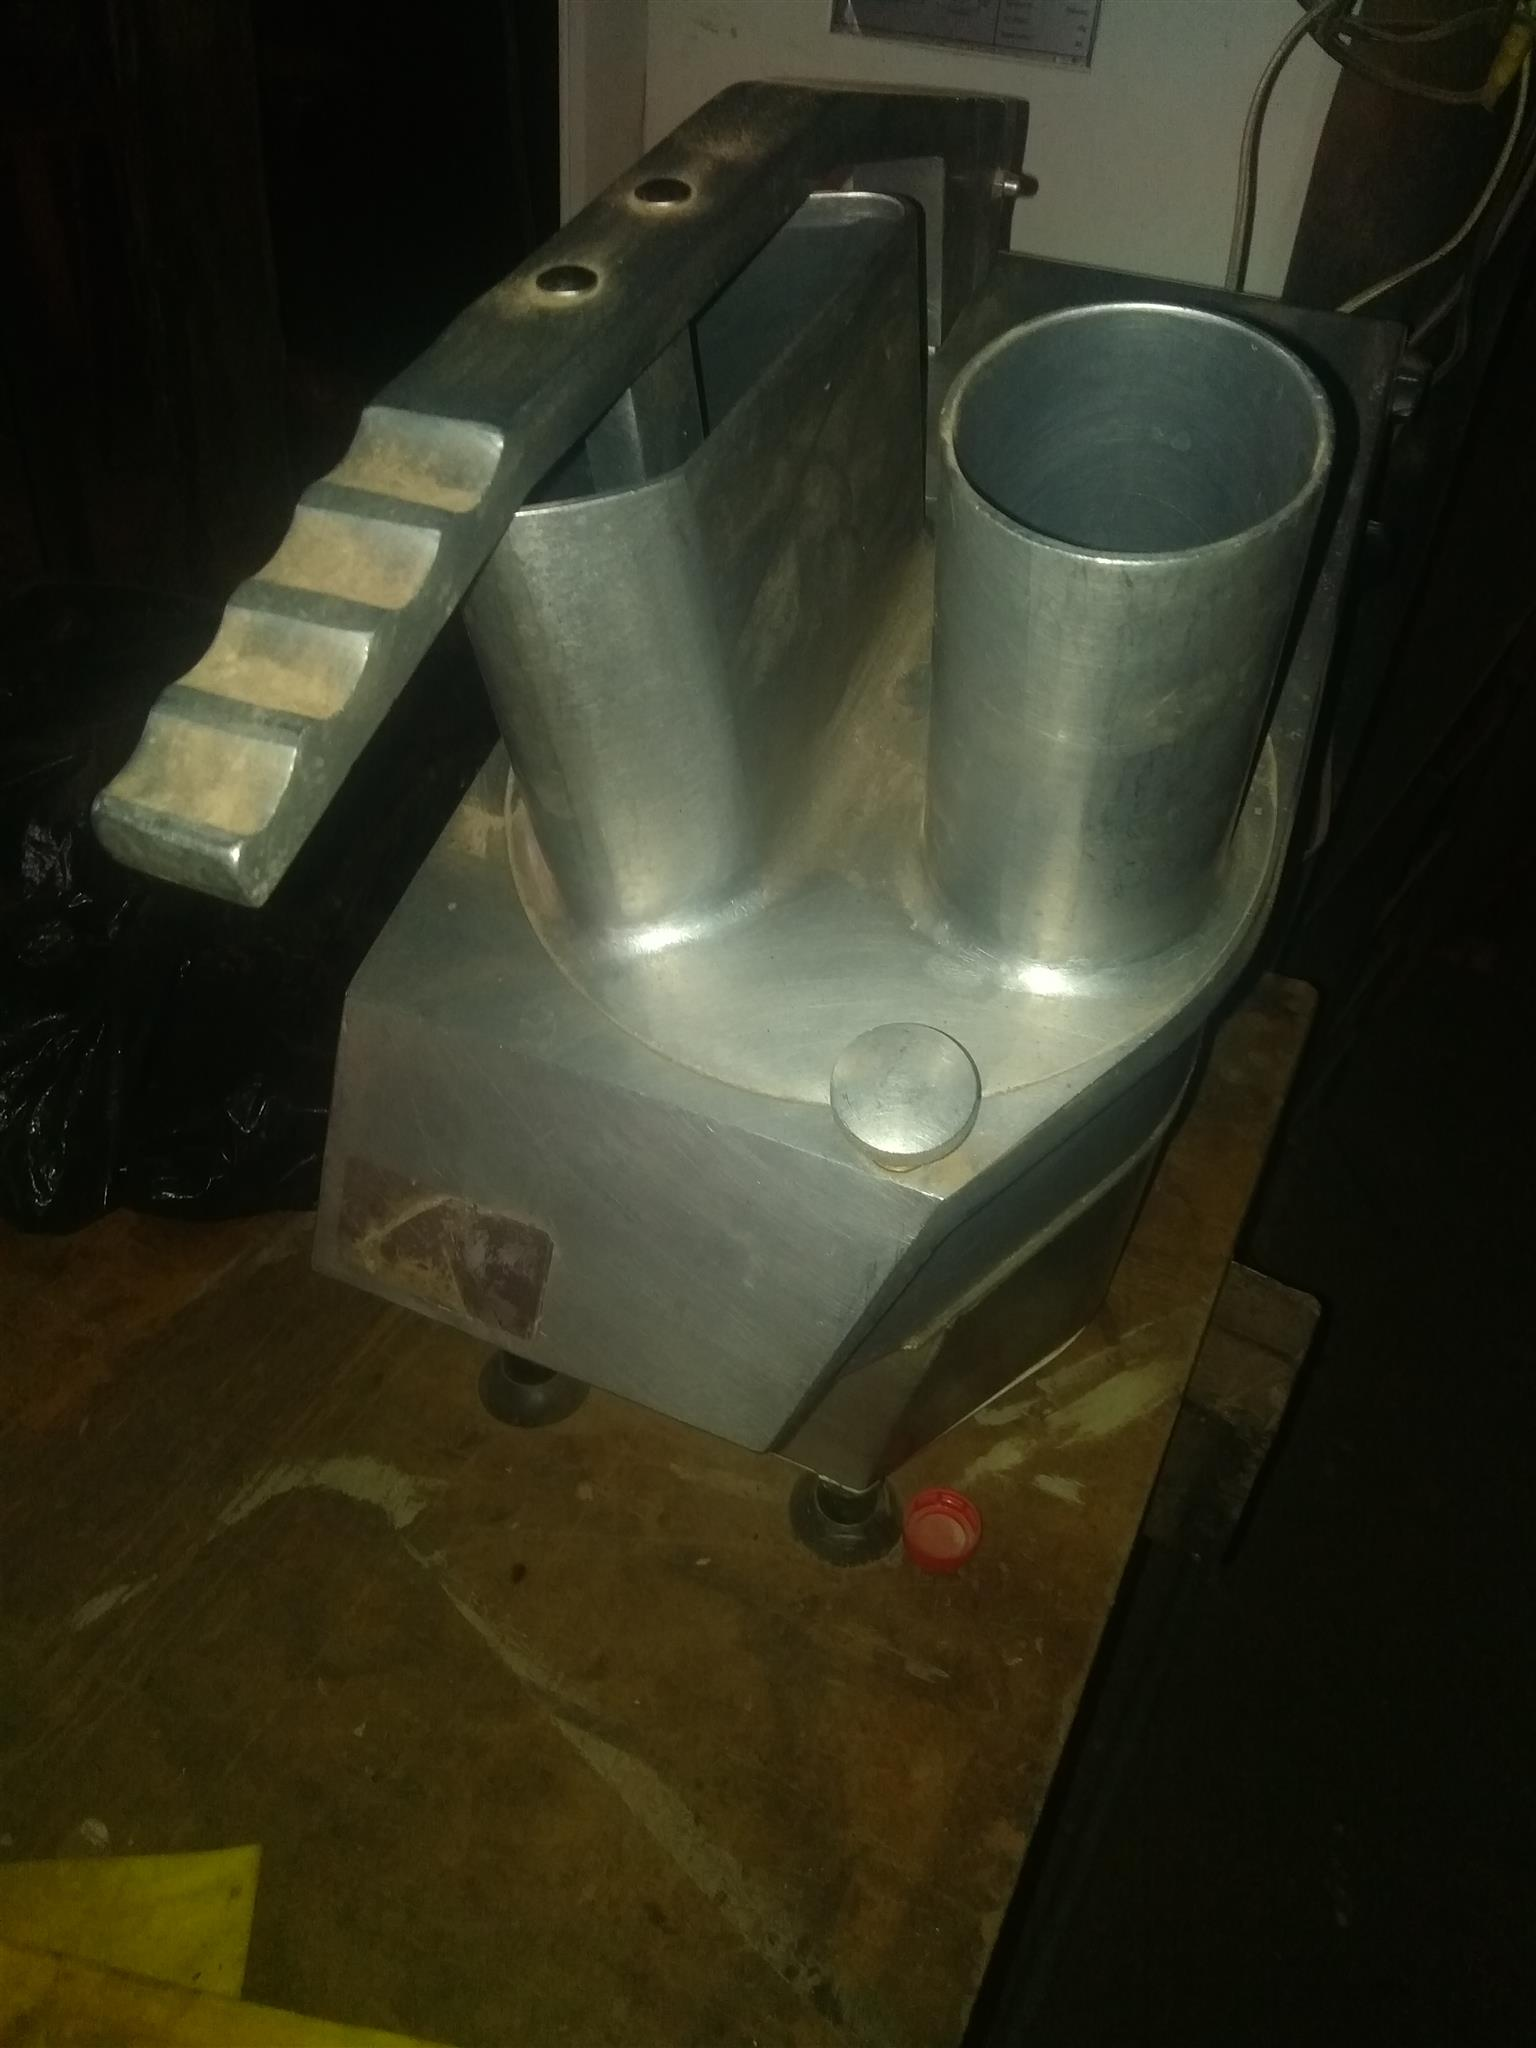 Used 2lit spiral dough mixer ideal for vetkoekor bread.